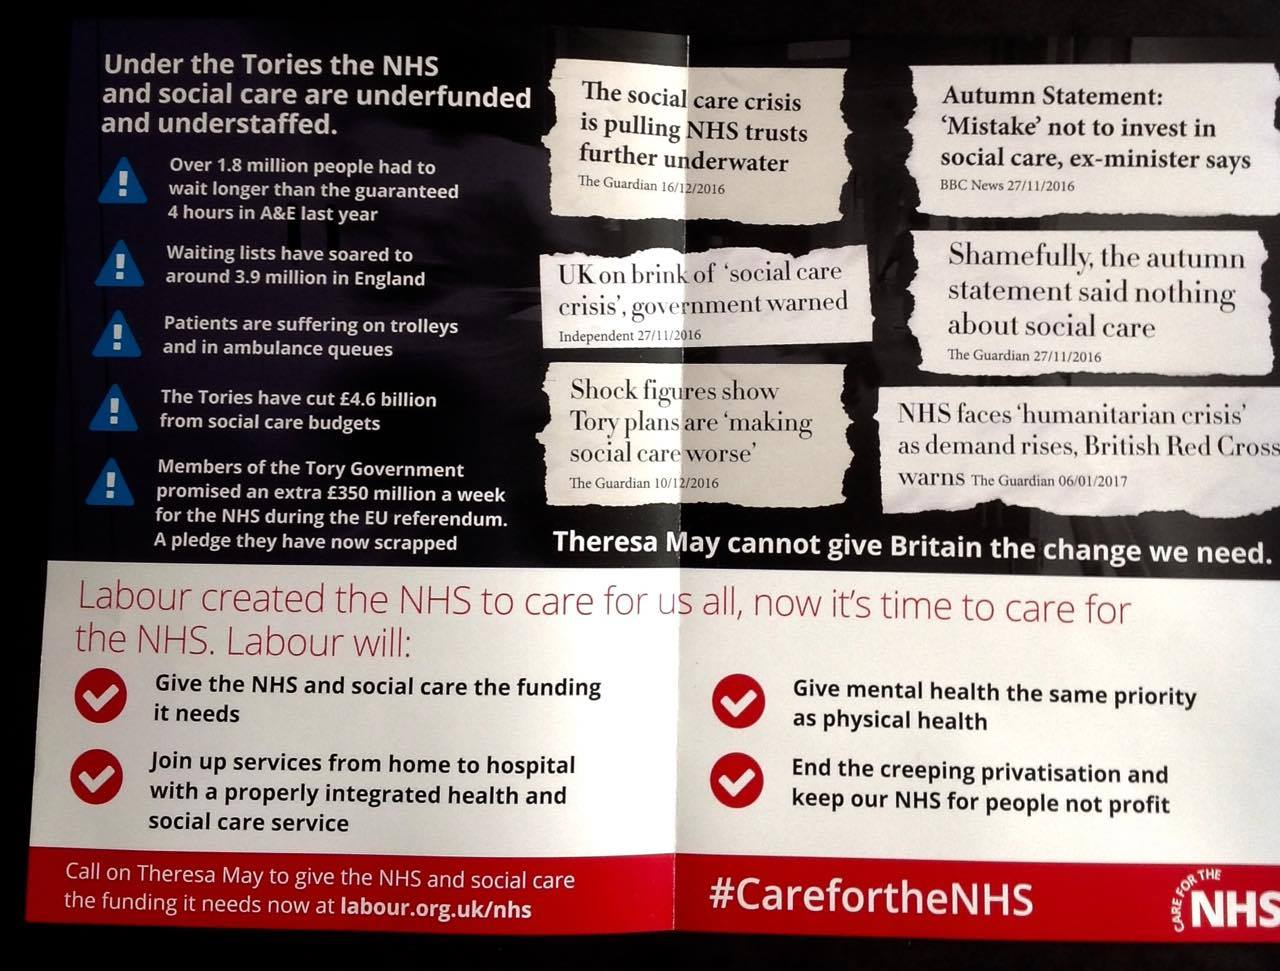 Care for the NHS